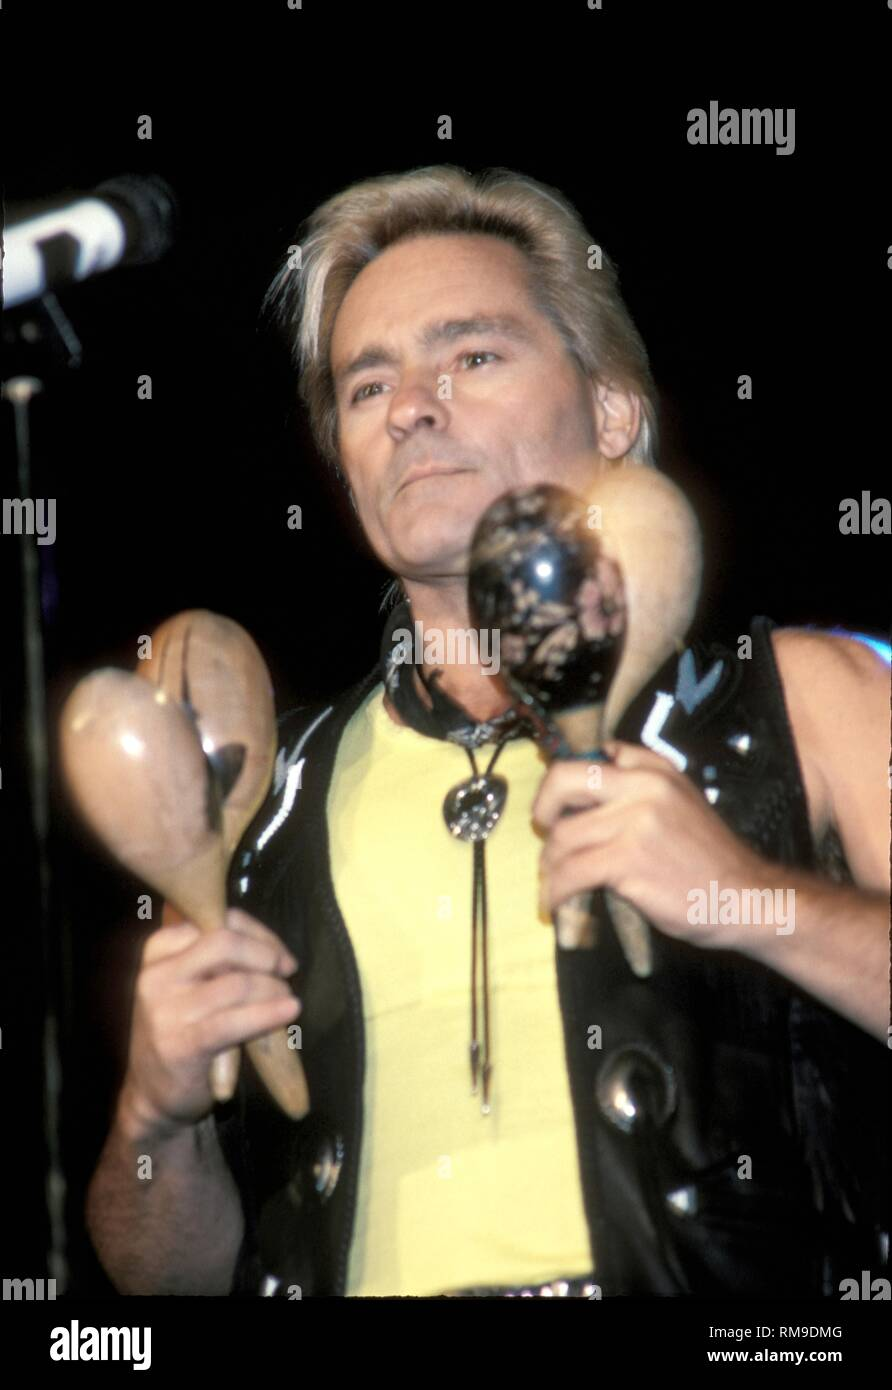 Musician Marty Balin of the Jefferson Starship is shown performing on stage during a 'live' concert appearance. - Stock Image